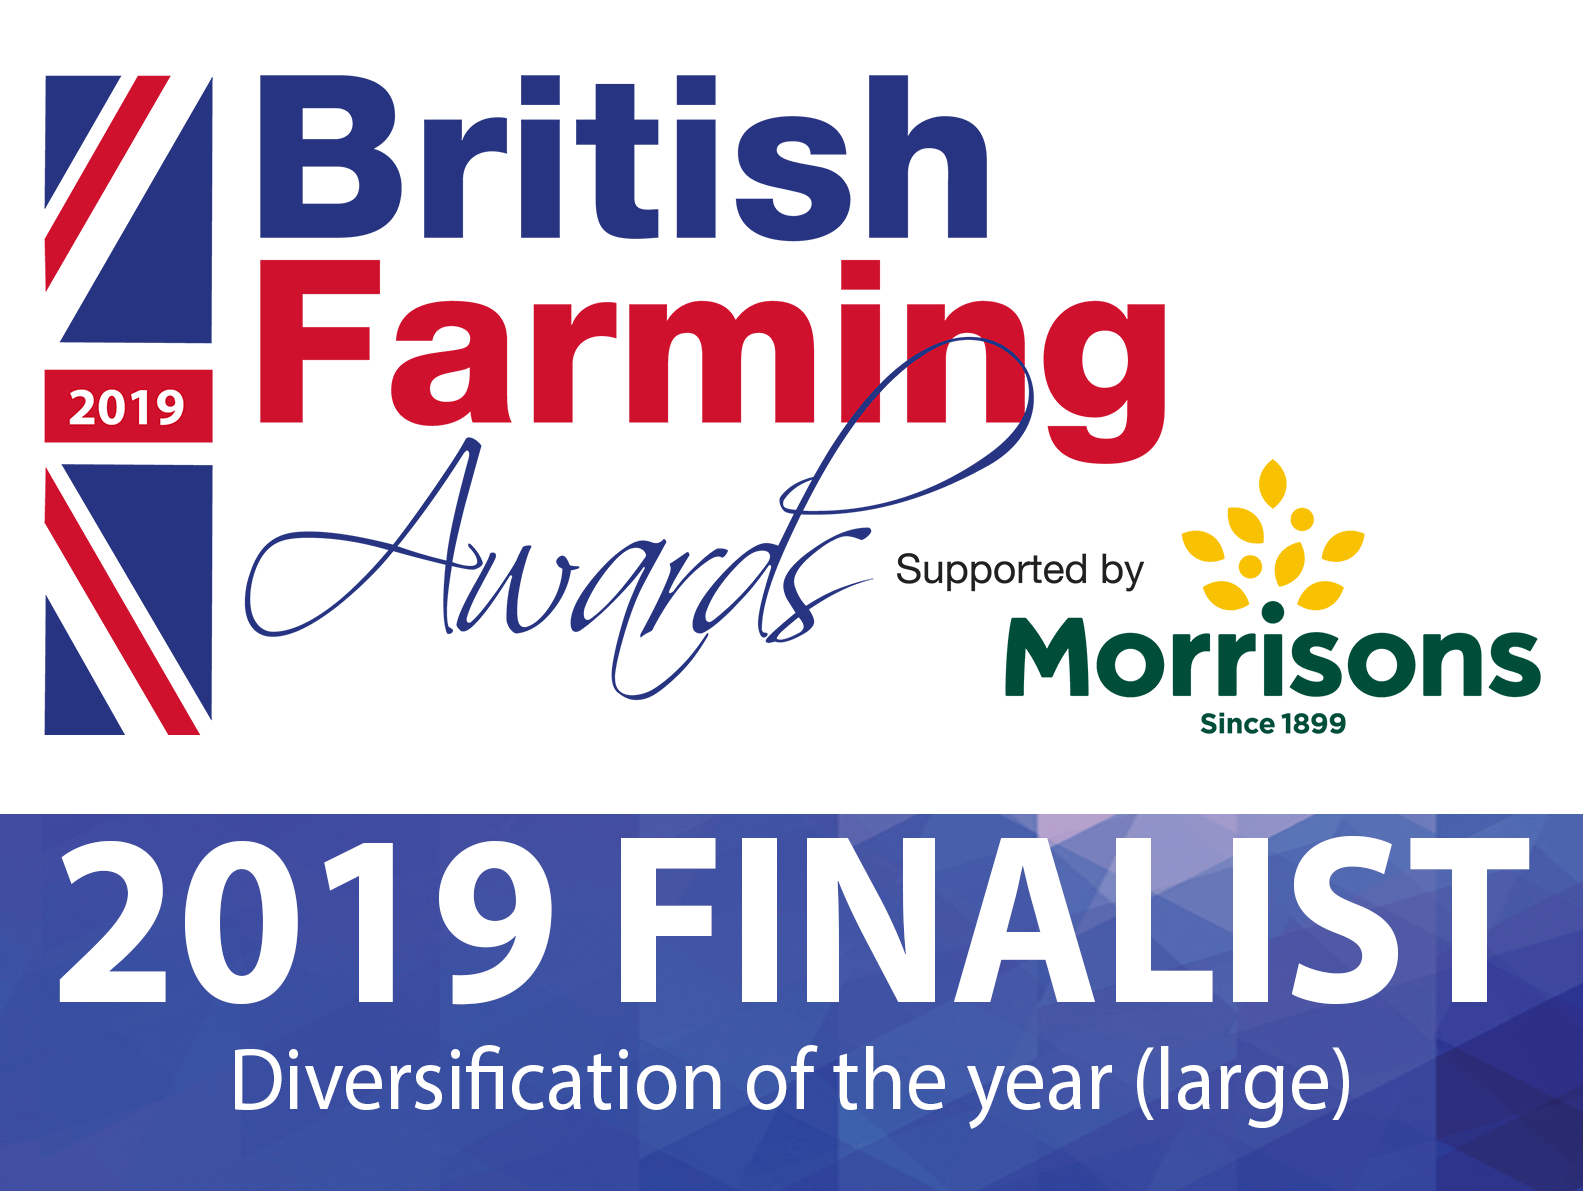 Deepdale Farm has been nominated for a British Farming Award - Diversification Innovator of the Year (large) Award